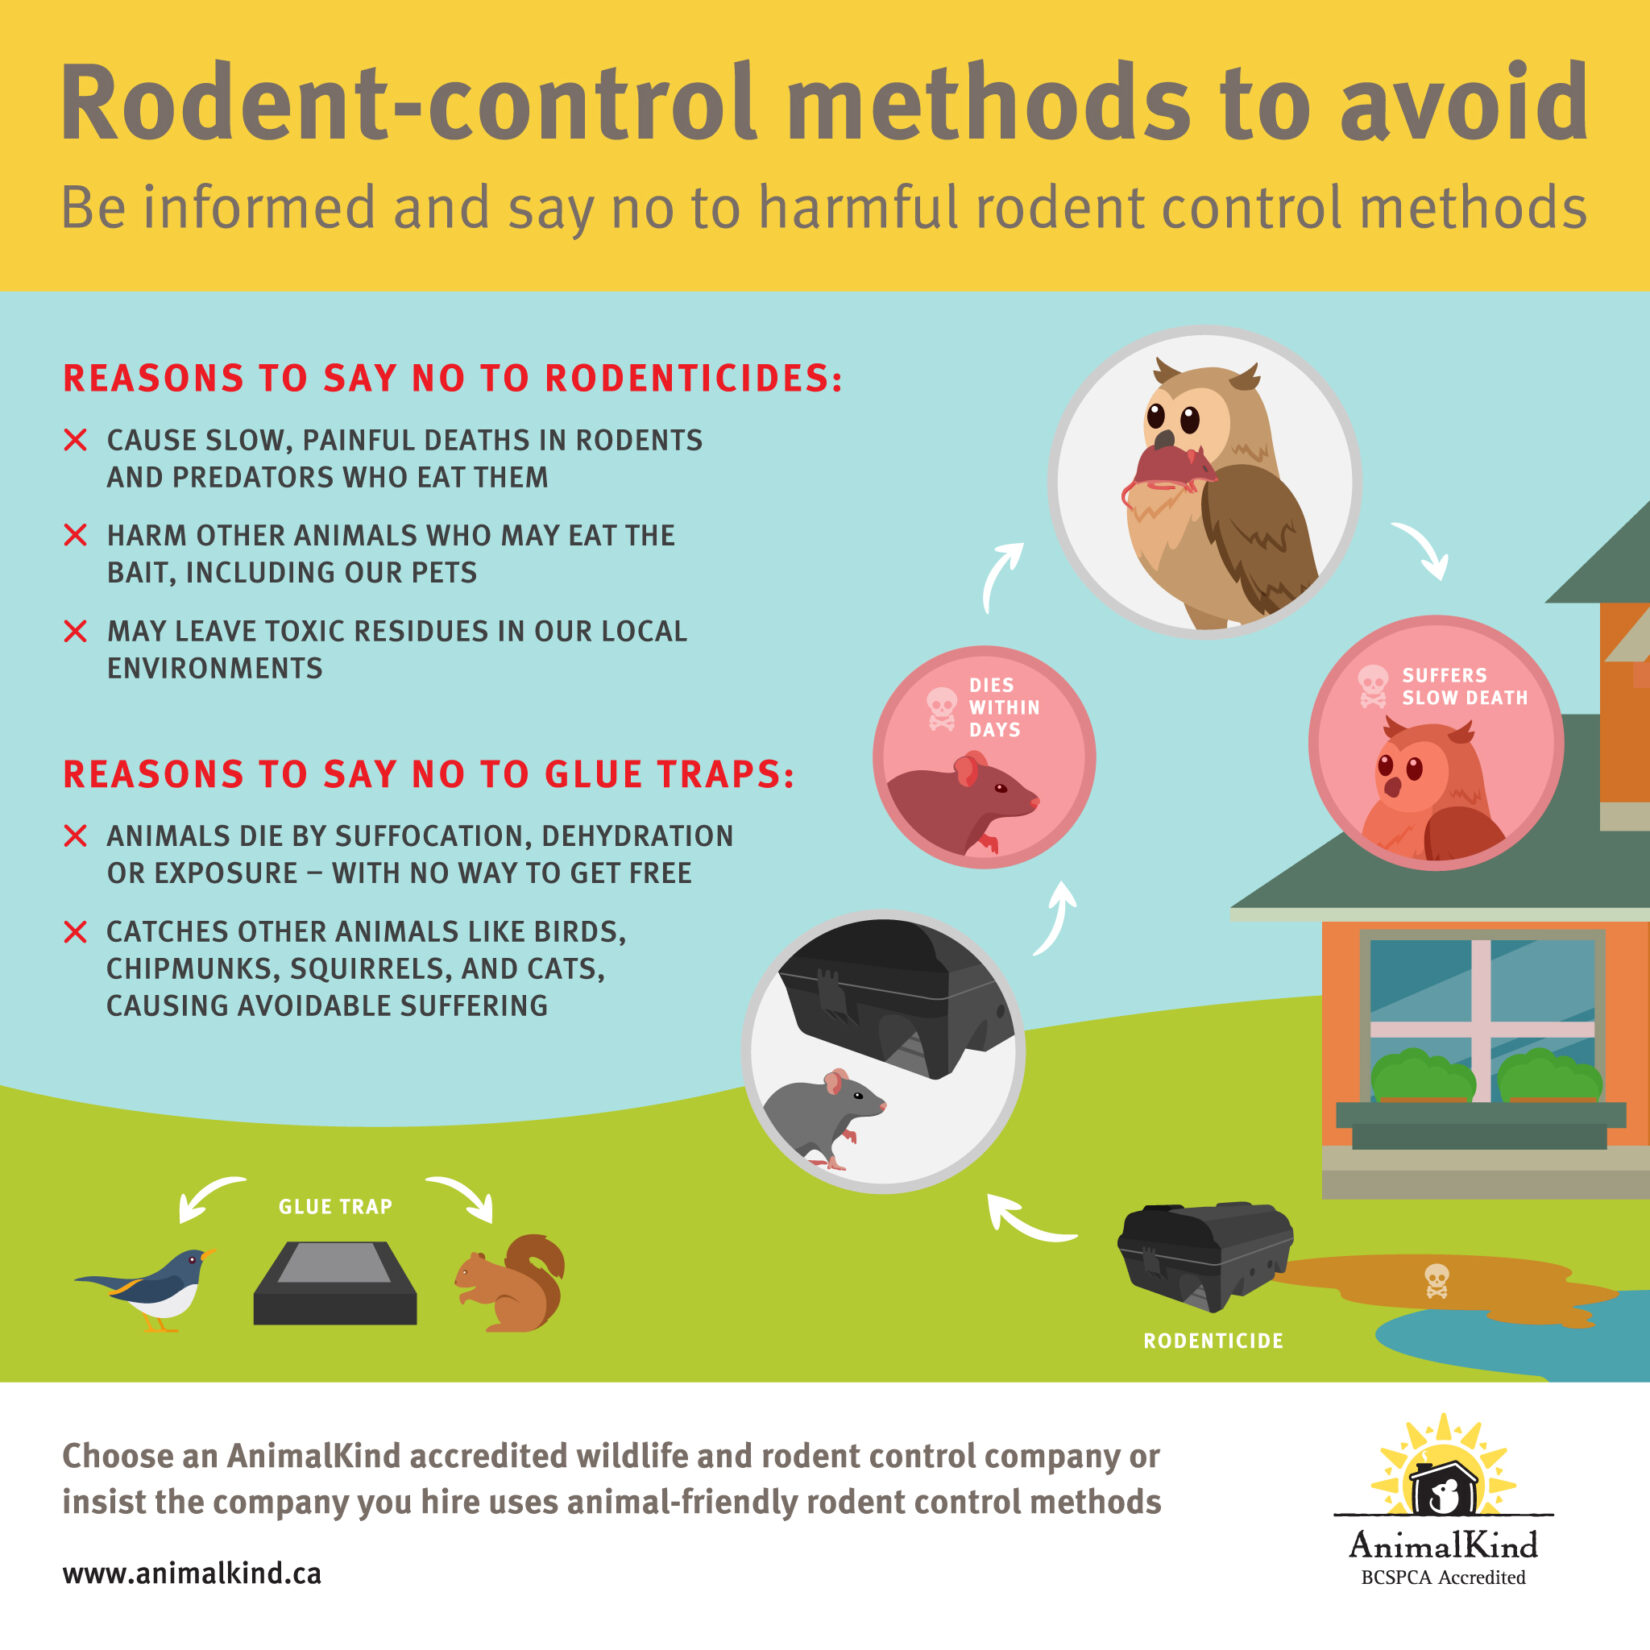 Rodent control methods to avoid